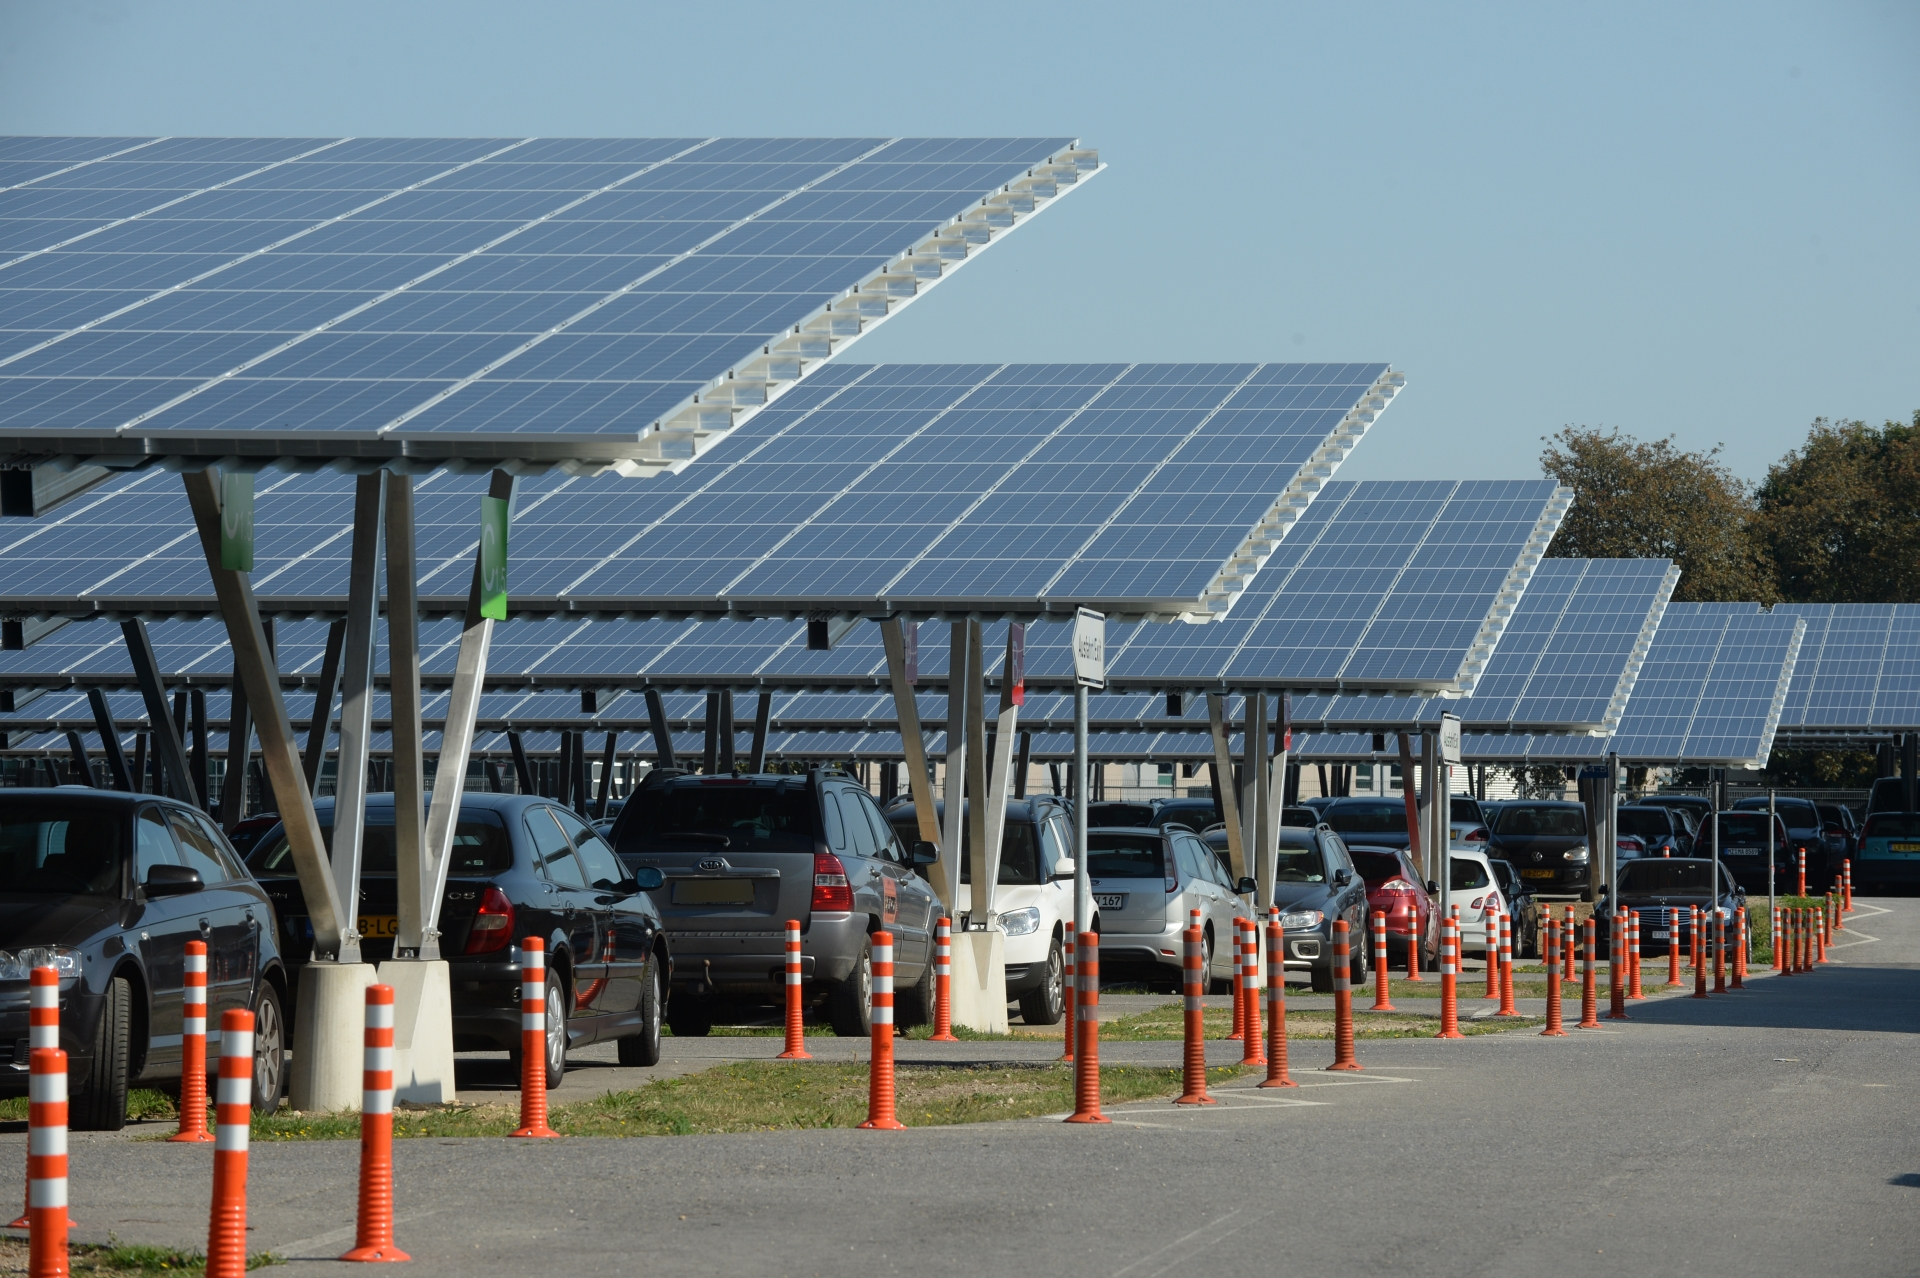 4 Mw Solar Carports For Weeze Airport Opened Sun Amp Wind